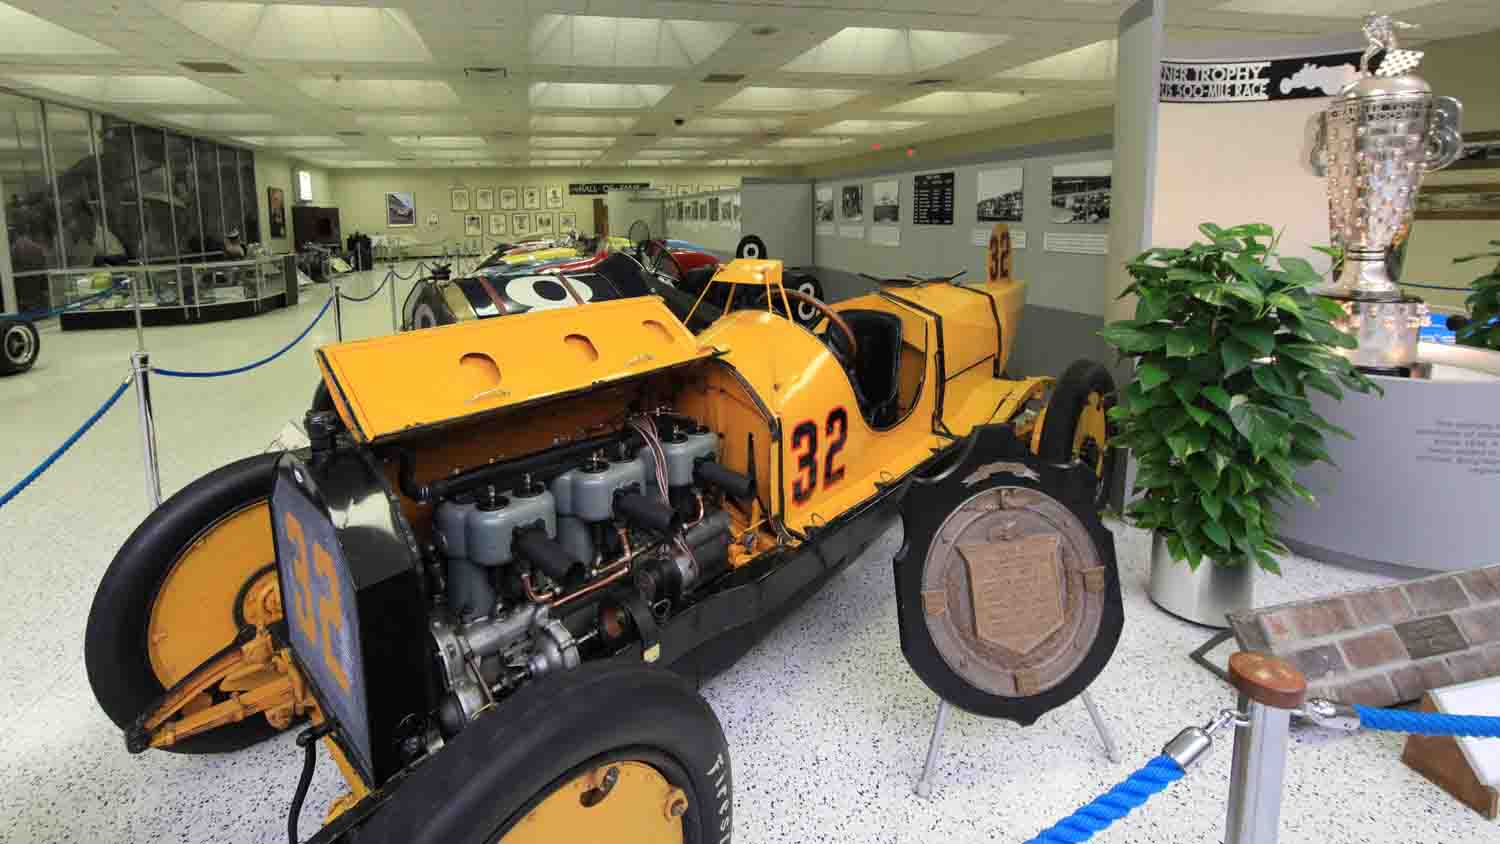 Ims hall of fame museum 4